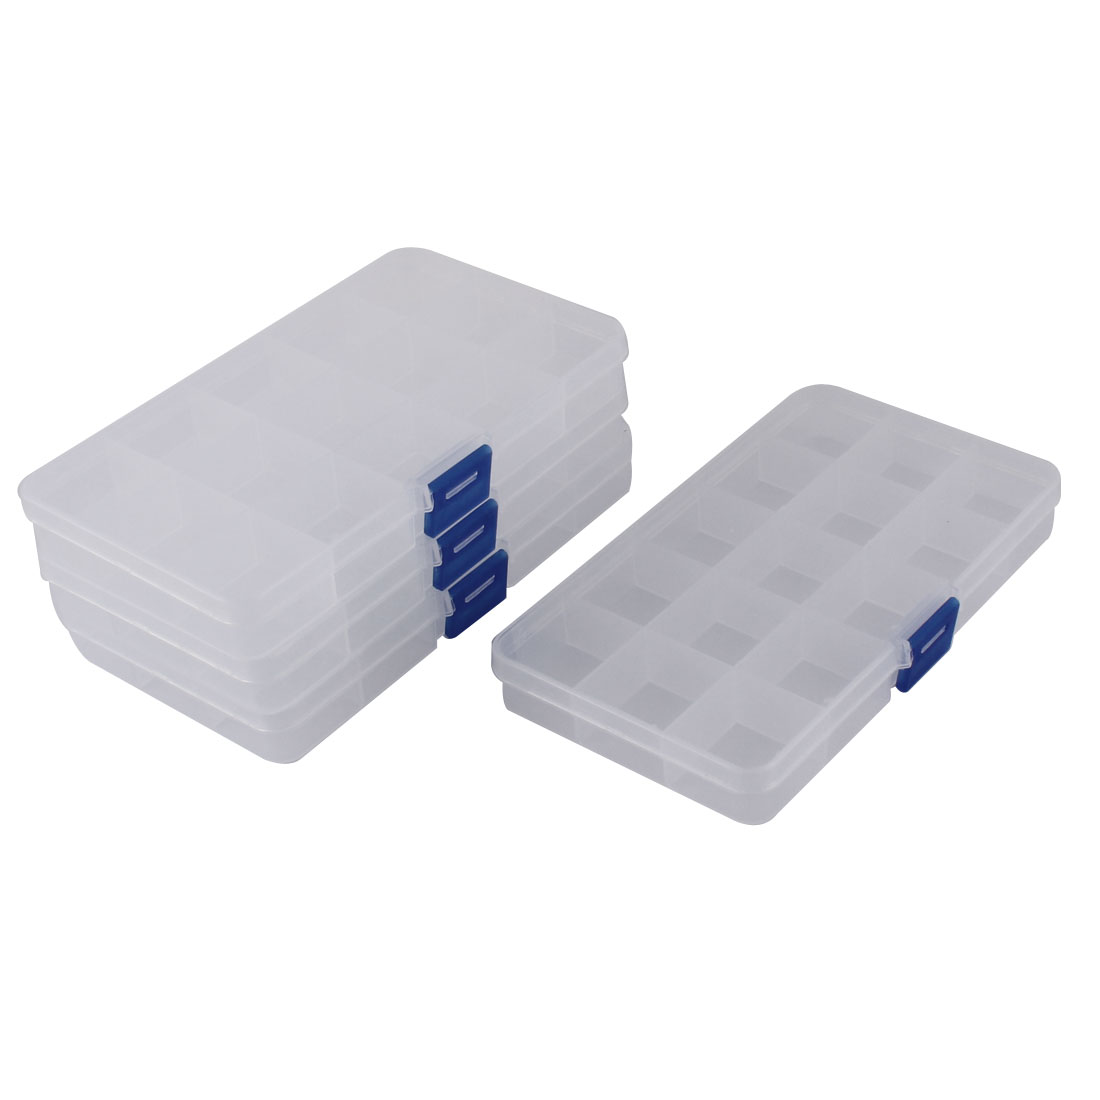 Clear Plastic 15 Compartments Electronic Component Storage Box Case 4pcs